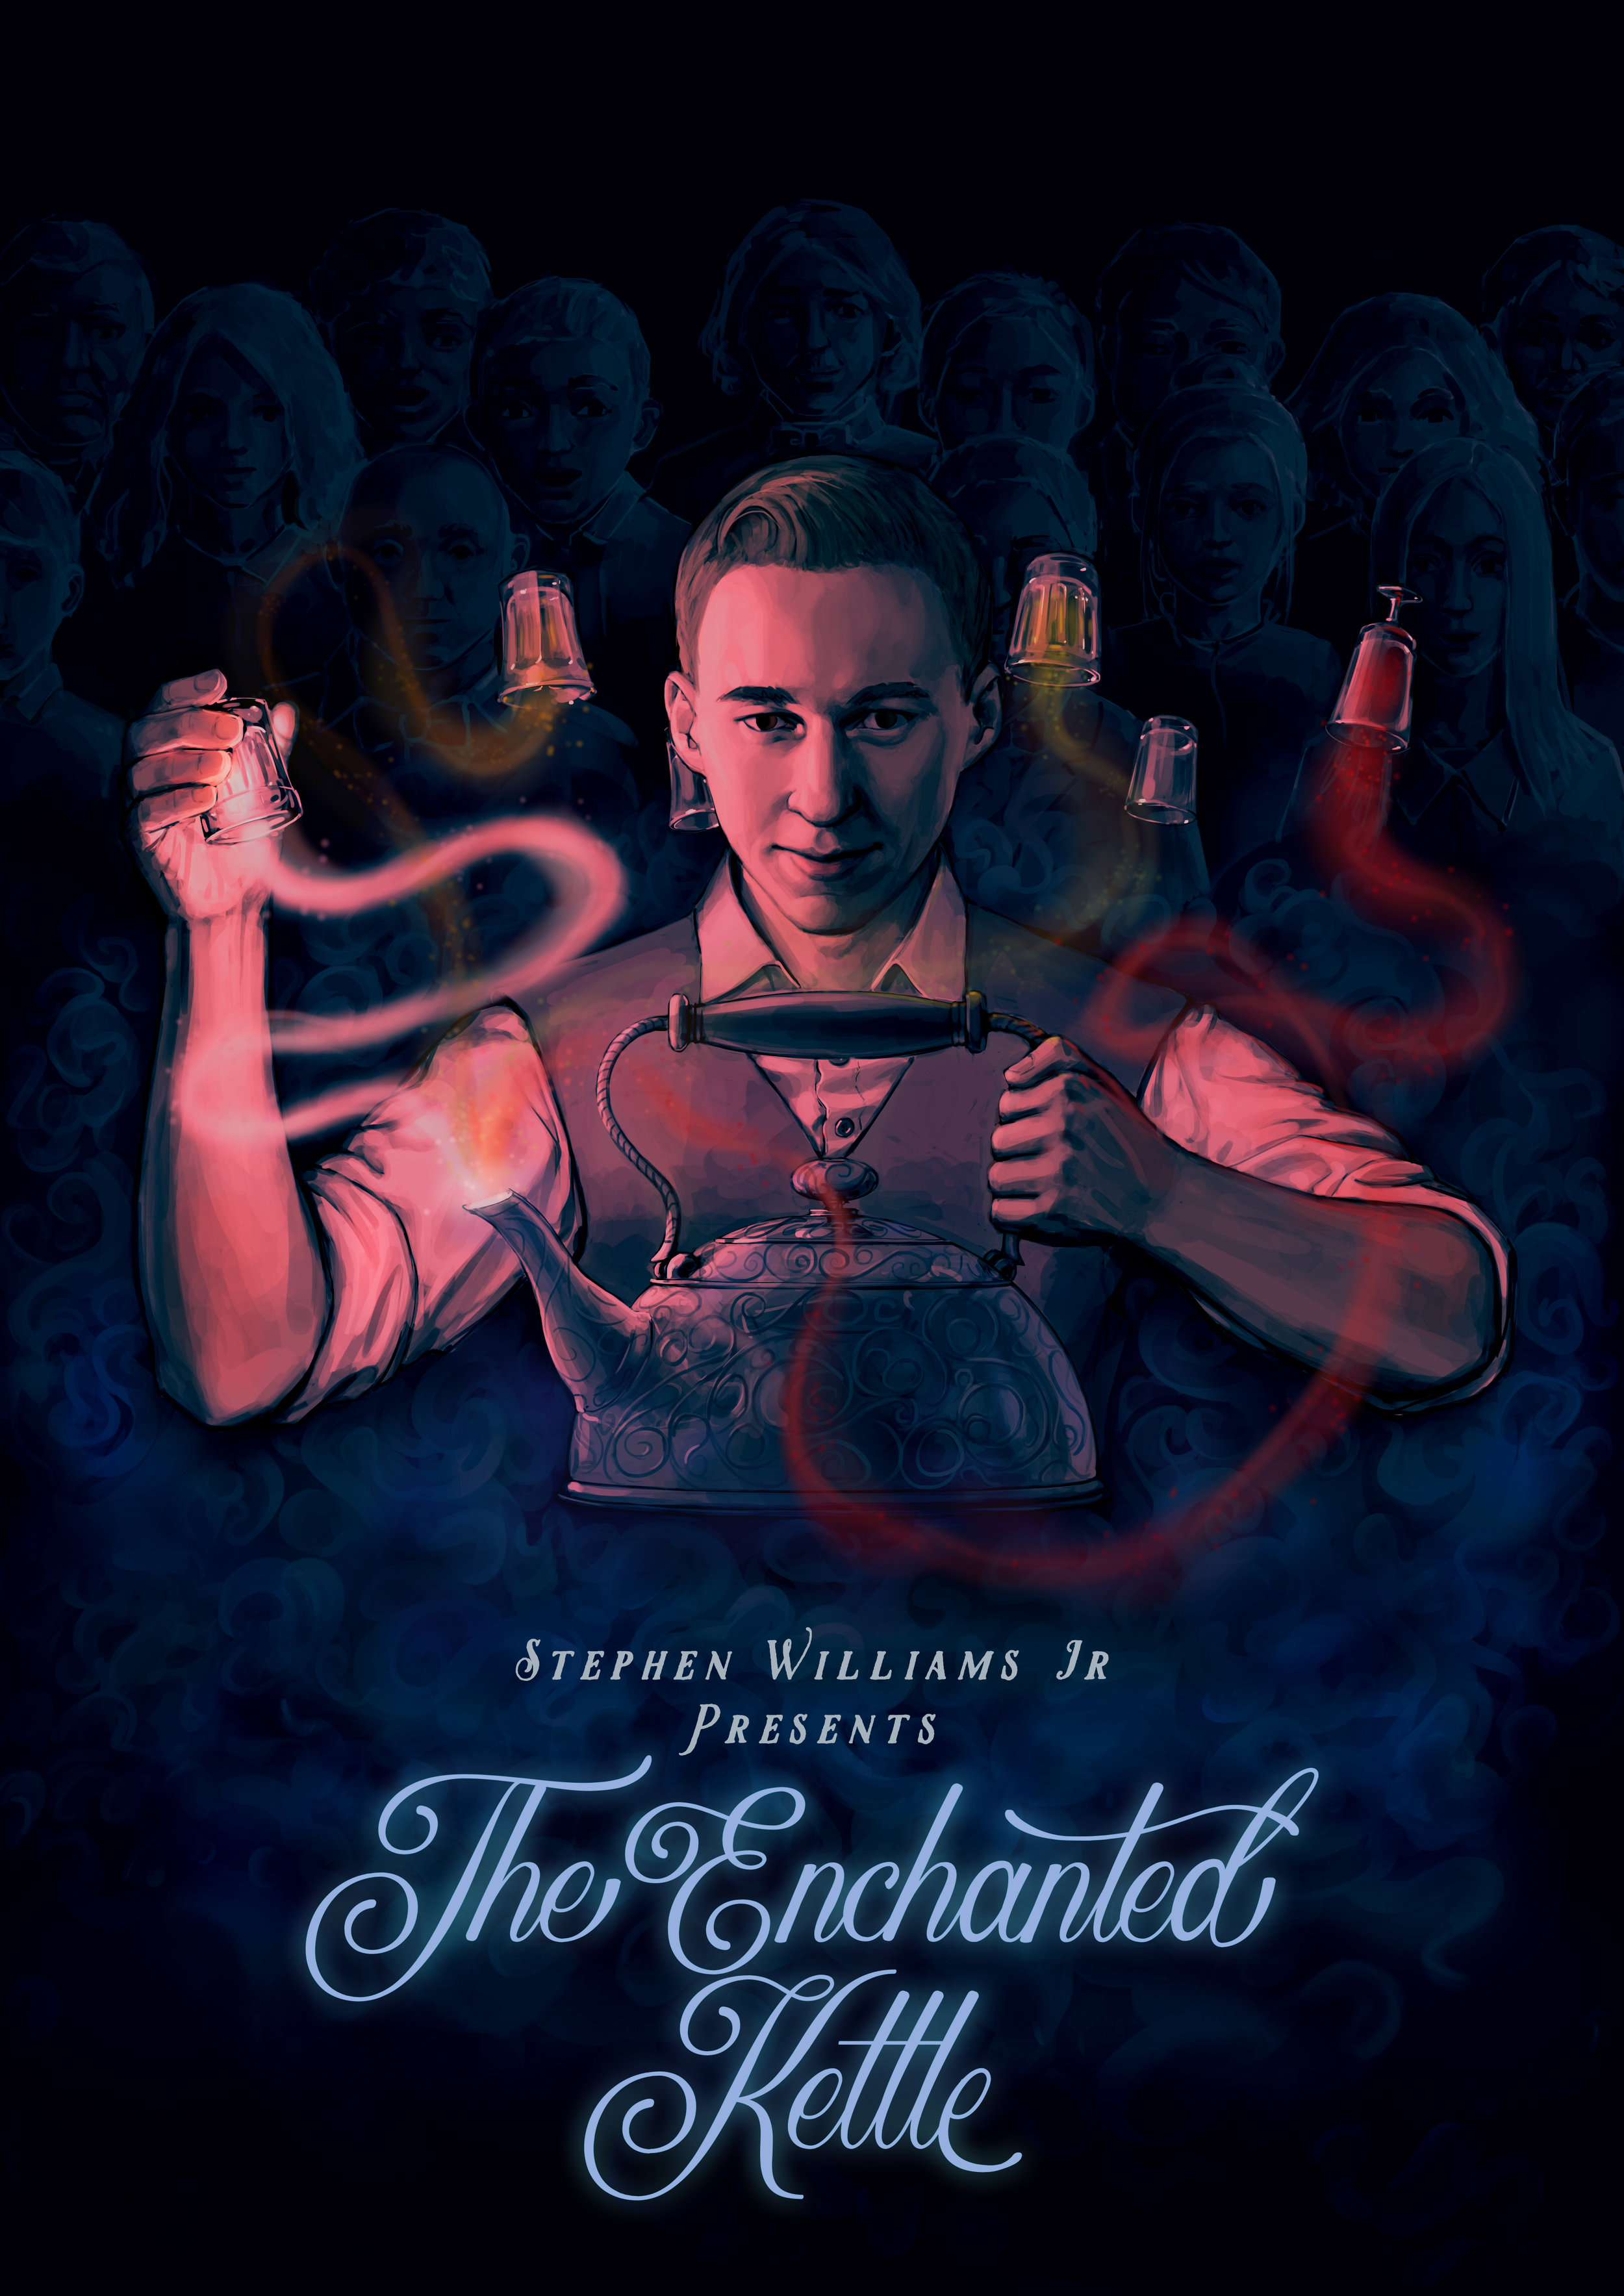 The Enchanted Kettle